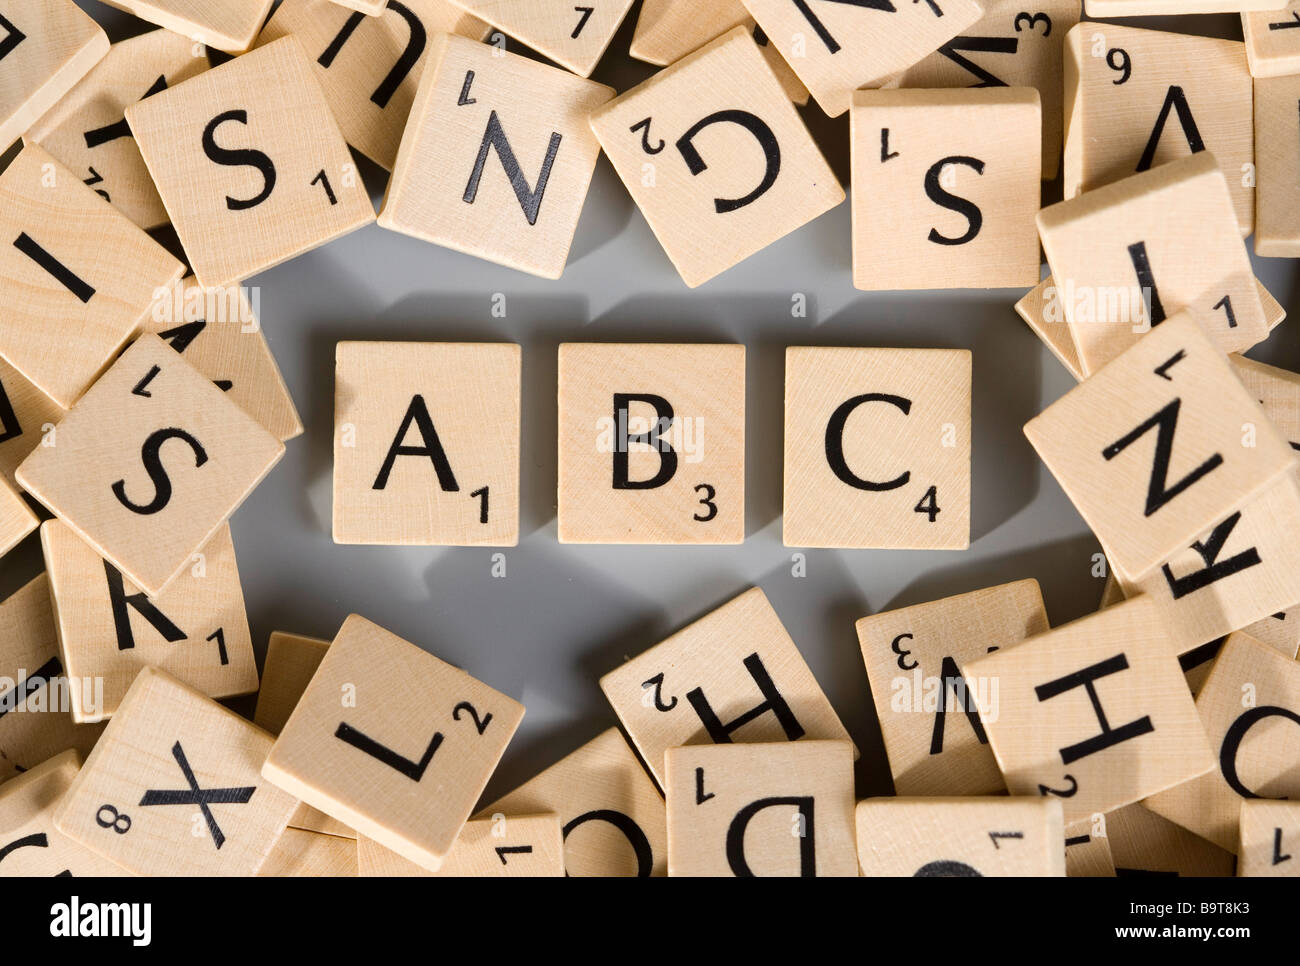 Scrabble pieces with numerous different letters forming ABC - Stock Image